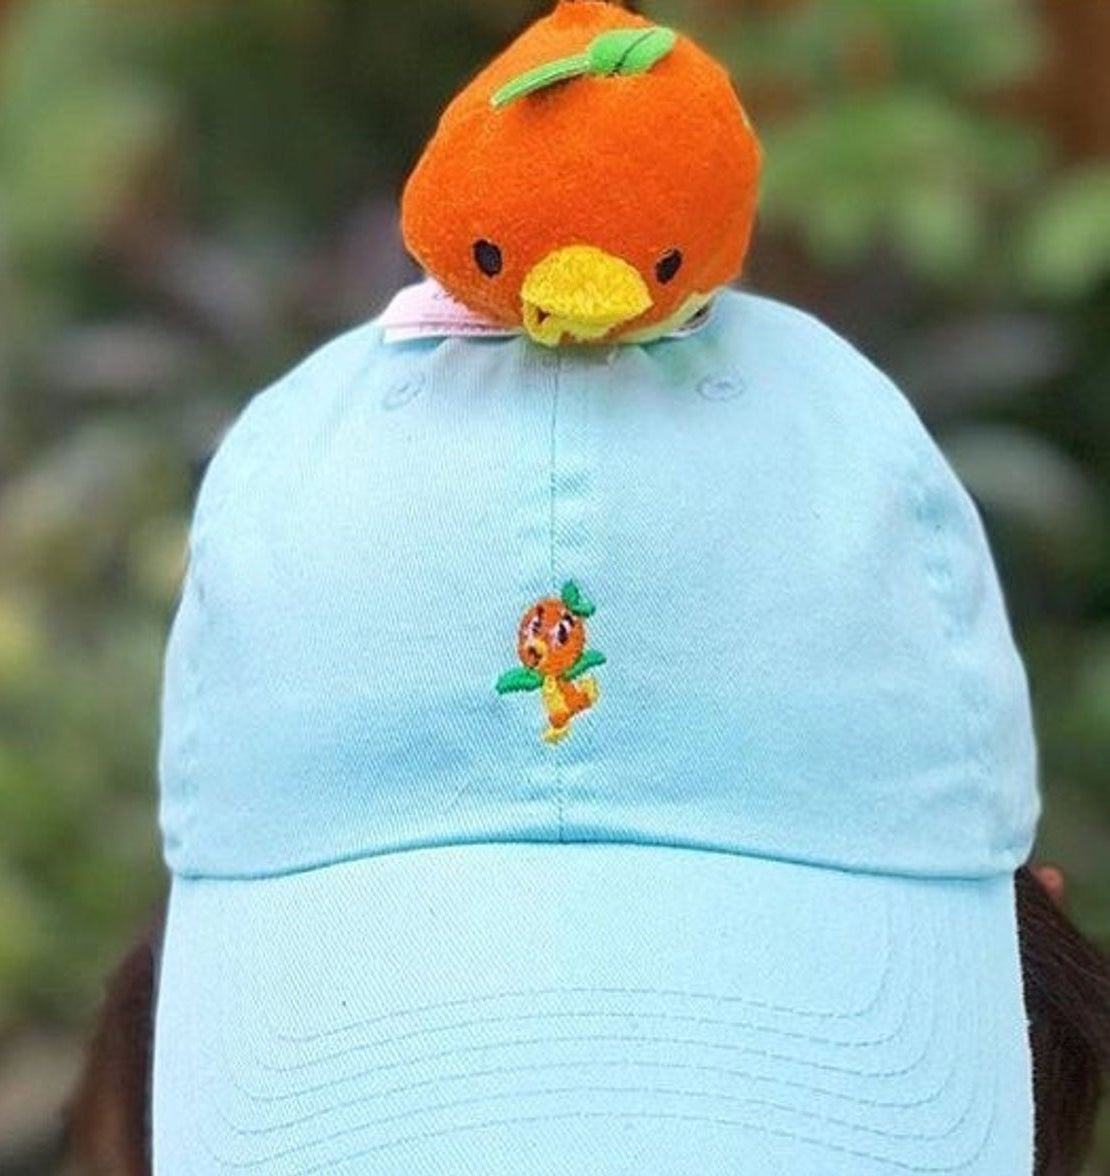 a light blue hat with an orange bird embroidered on it